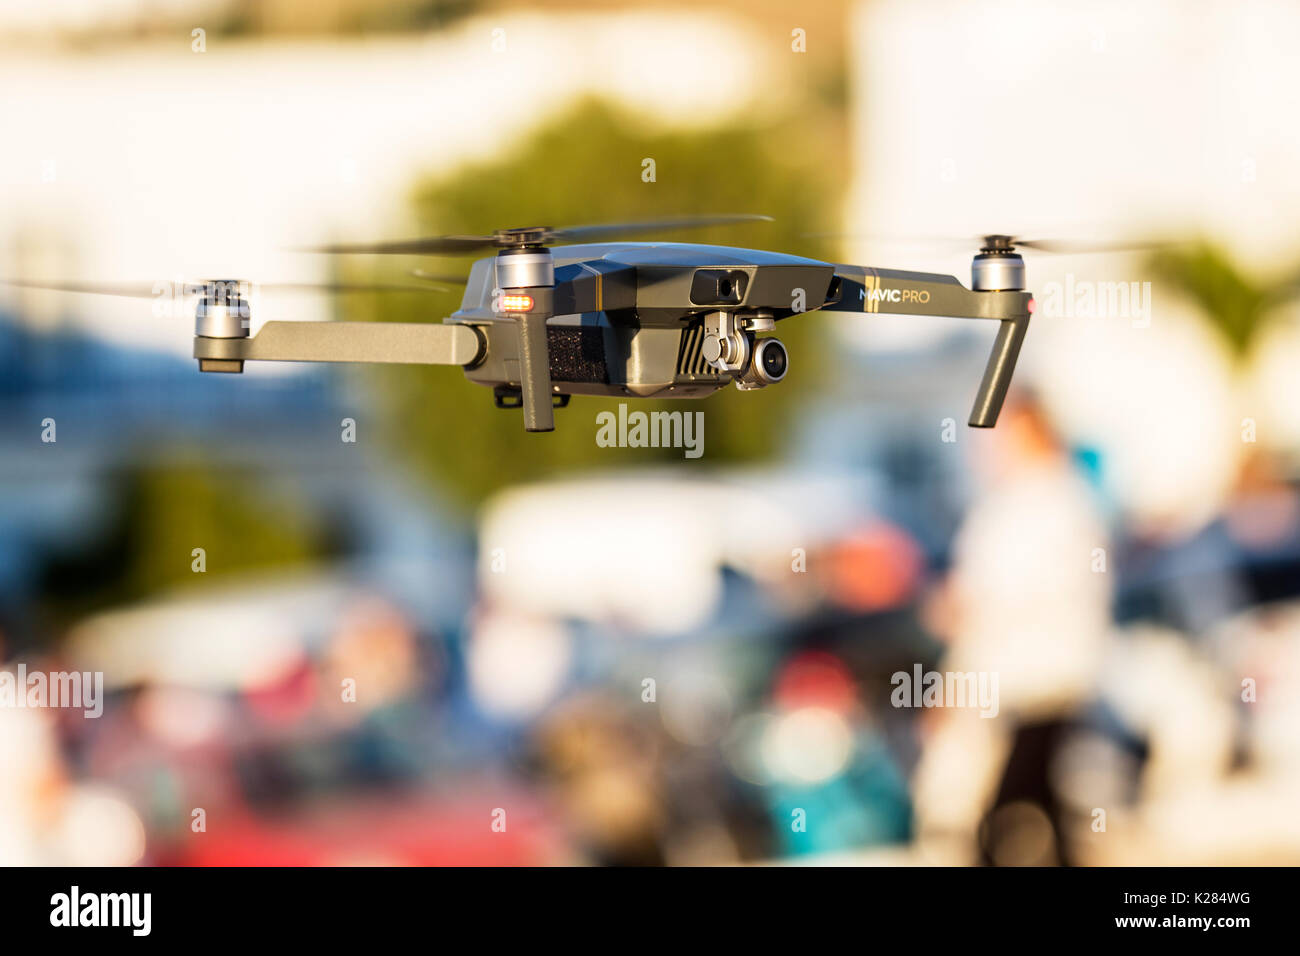 Mavic Pro quadcopter drone flying over people. - Stock Image